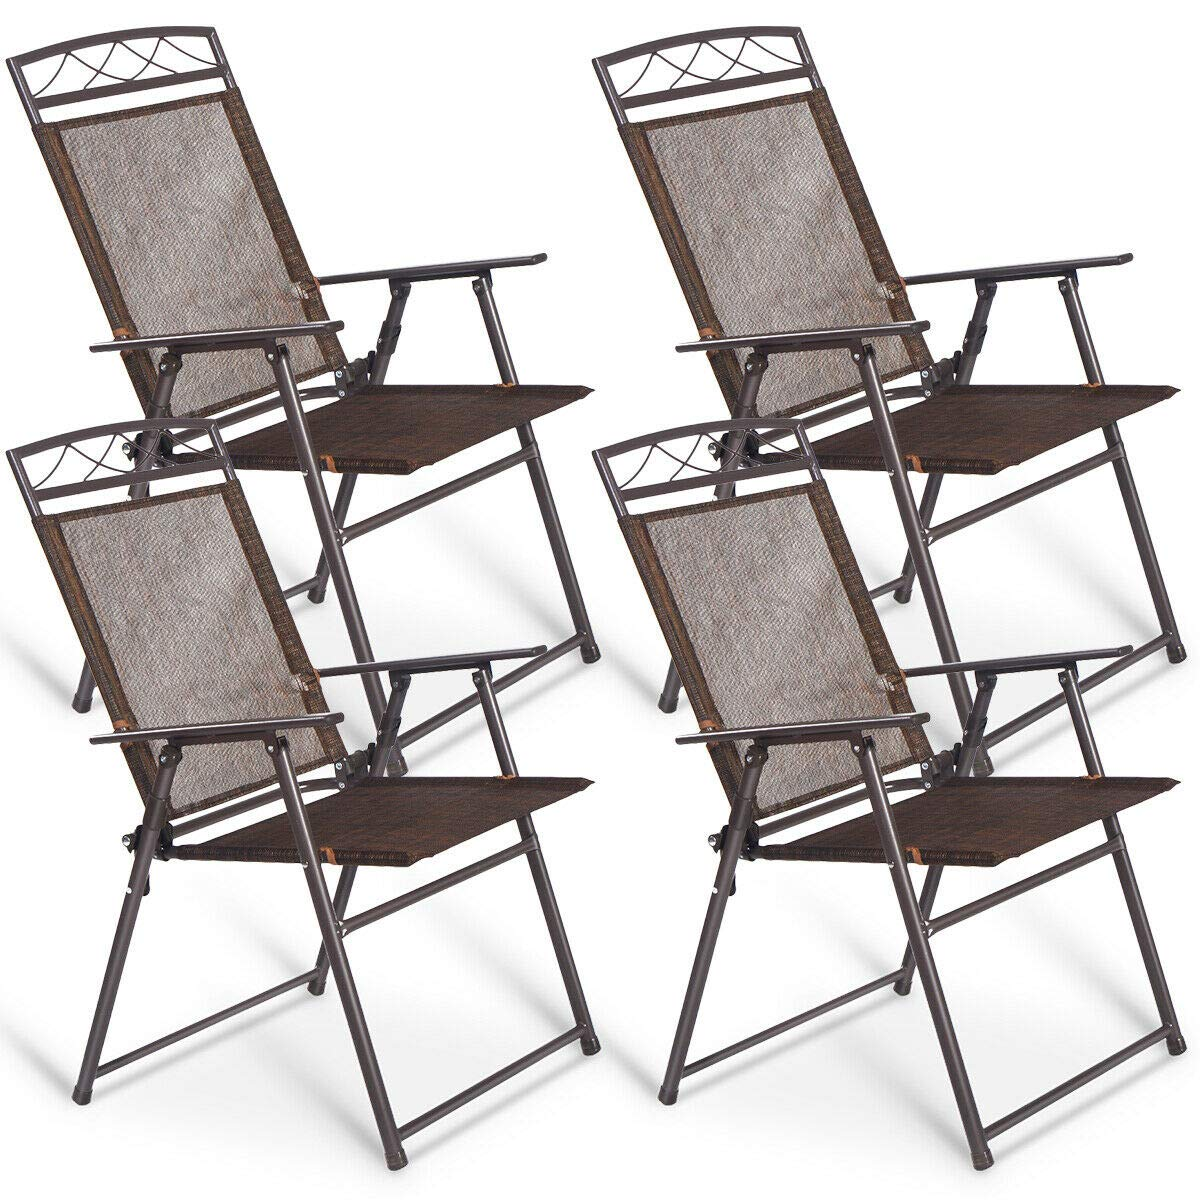 zazza95shop Set 4 Outdoor Patio Home Furniture Decor Folding Sling Back Chair Utility Functional Summer Lounge Coffee Color Durable Steel Frame UV Resistant Textylene Fabric